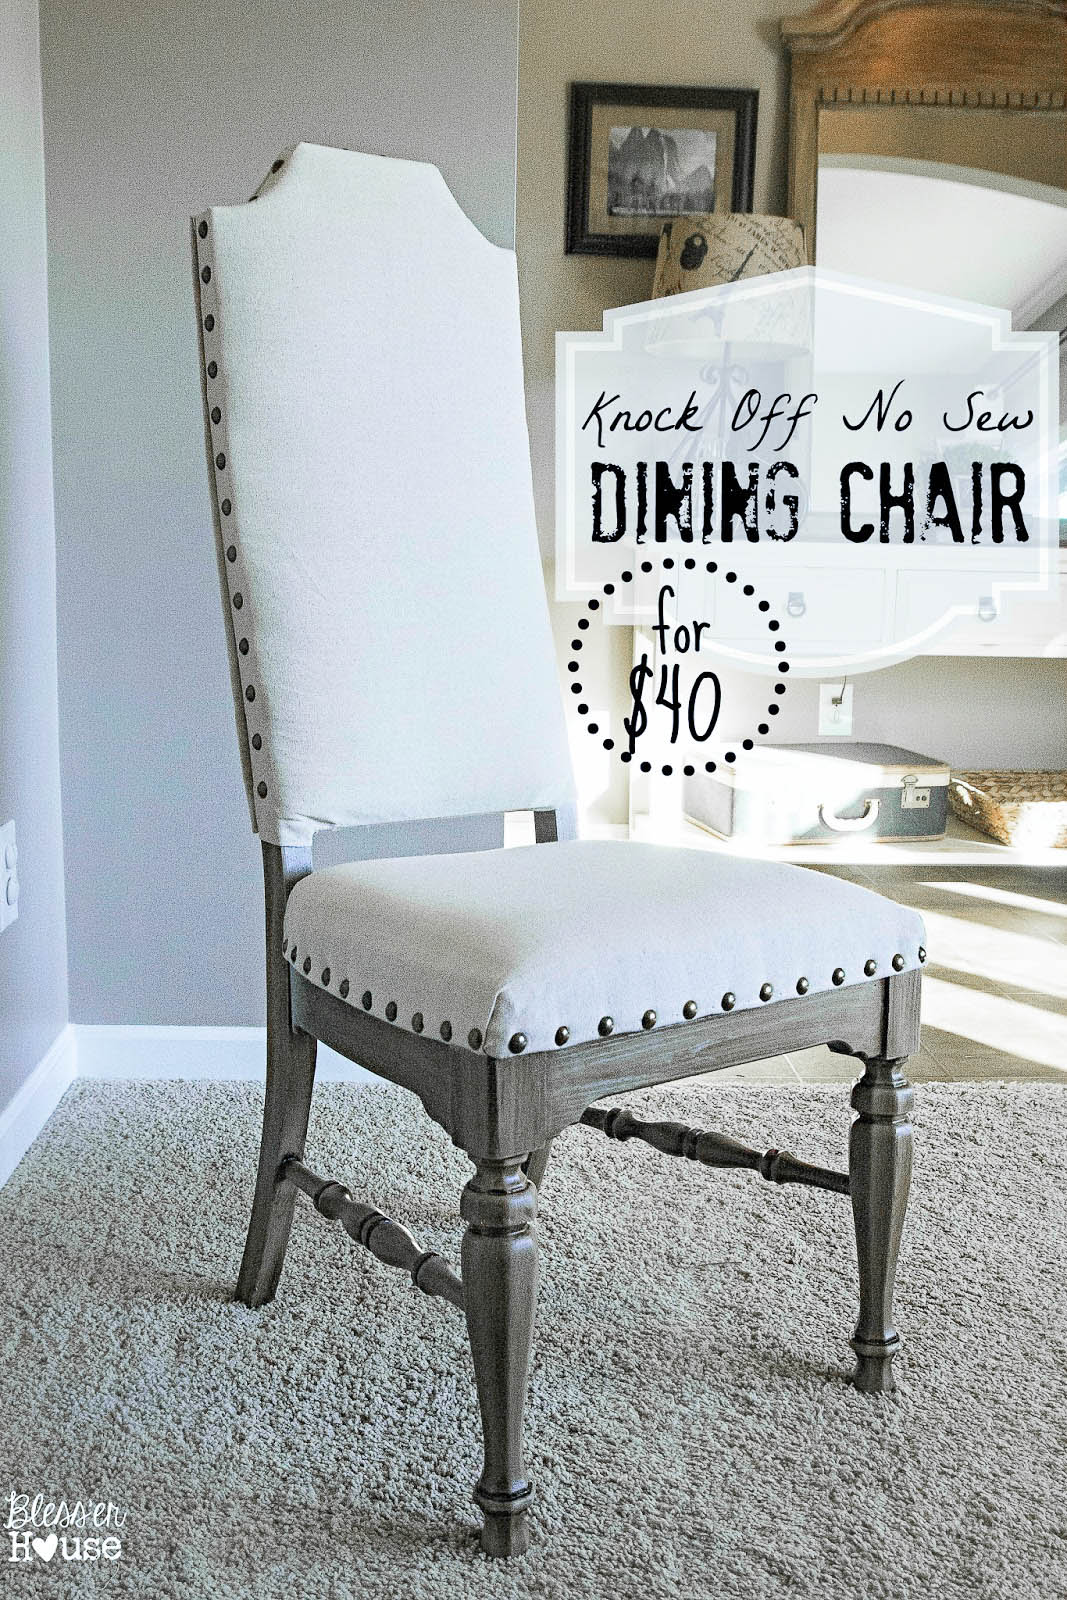 https://4.bp.blogspot.com/-lv_DMjX6HHU/VLinT4yQaHI/AAAAAAAAMiM/5I4IbLayssc/s1600/knock-off-chair1.jpg